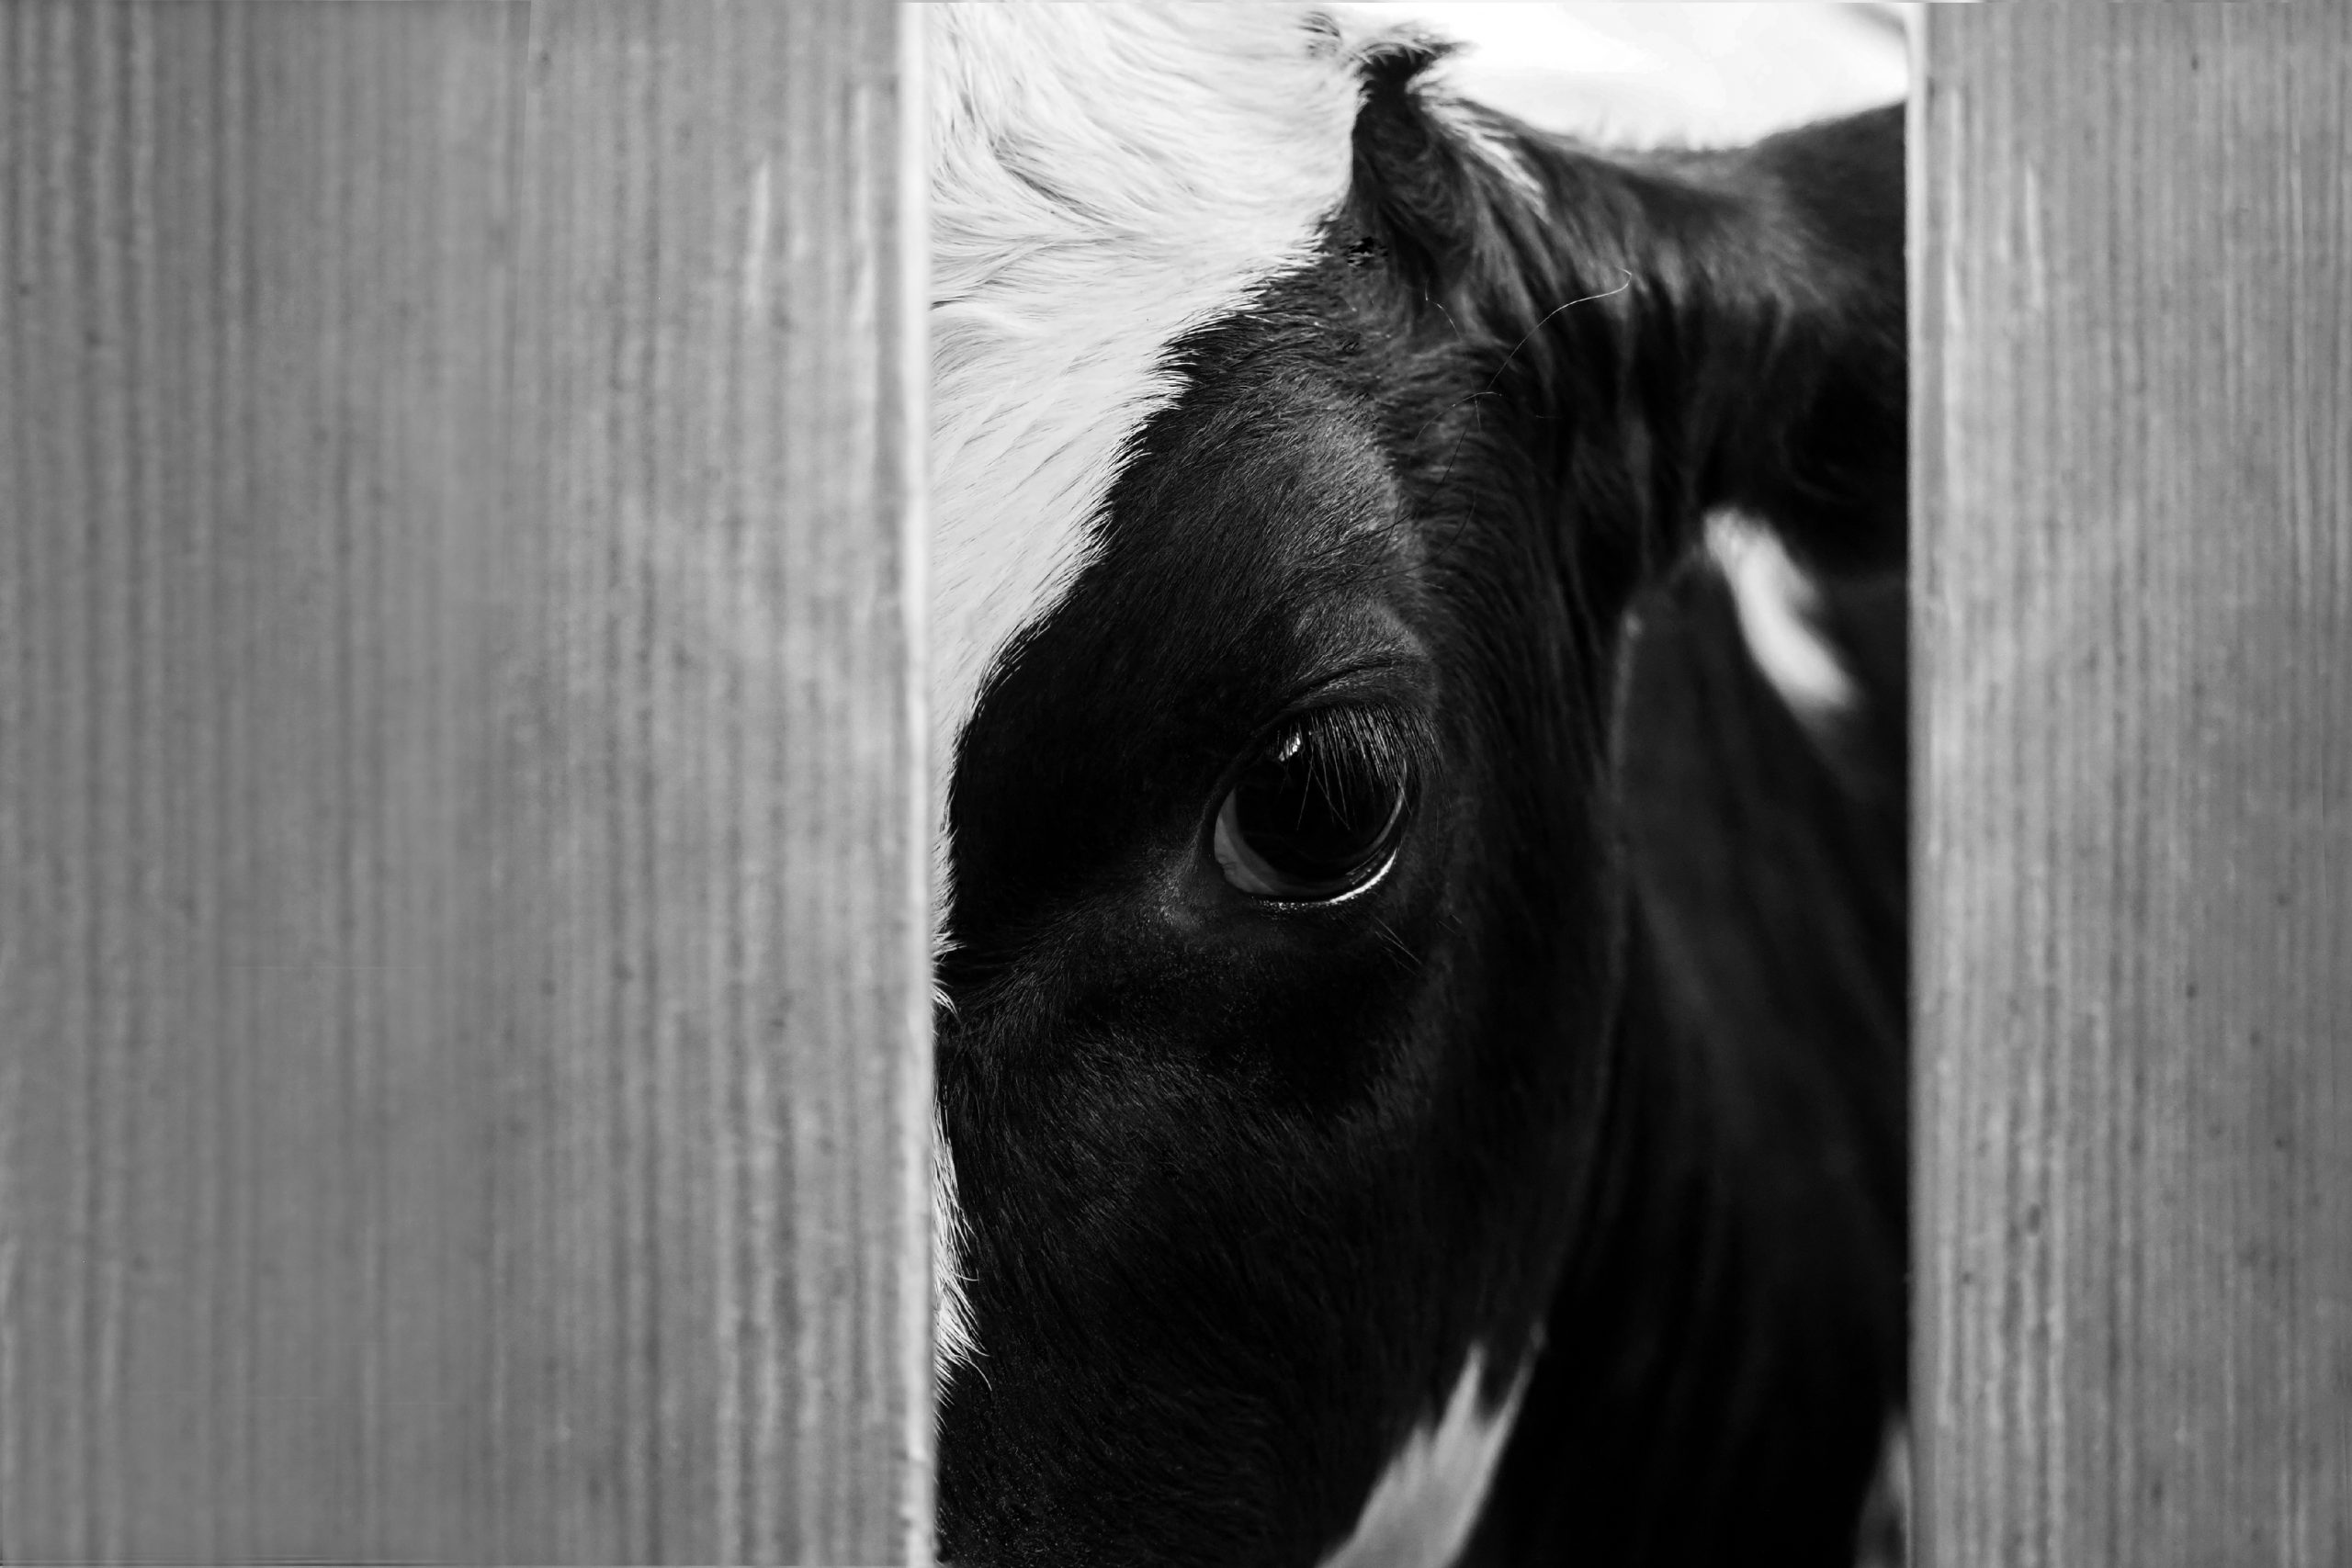 A Holstein cow gazes out from a slaughterhouse yard.